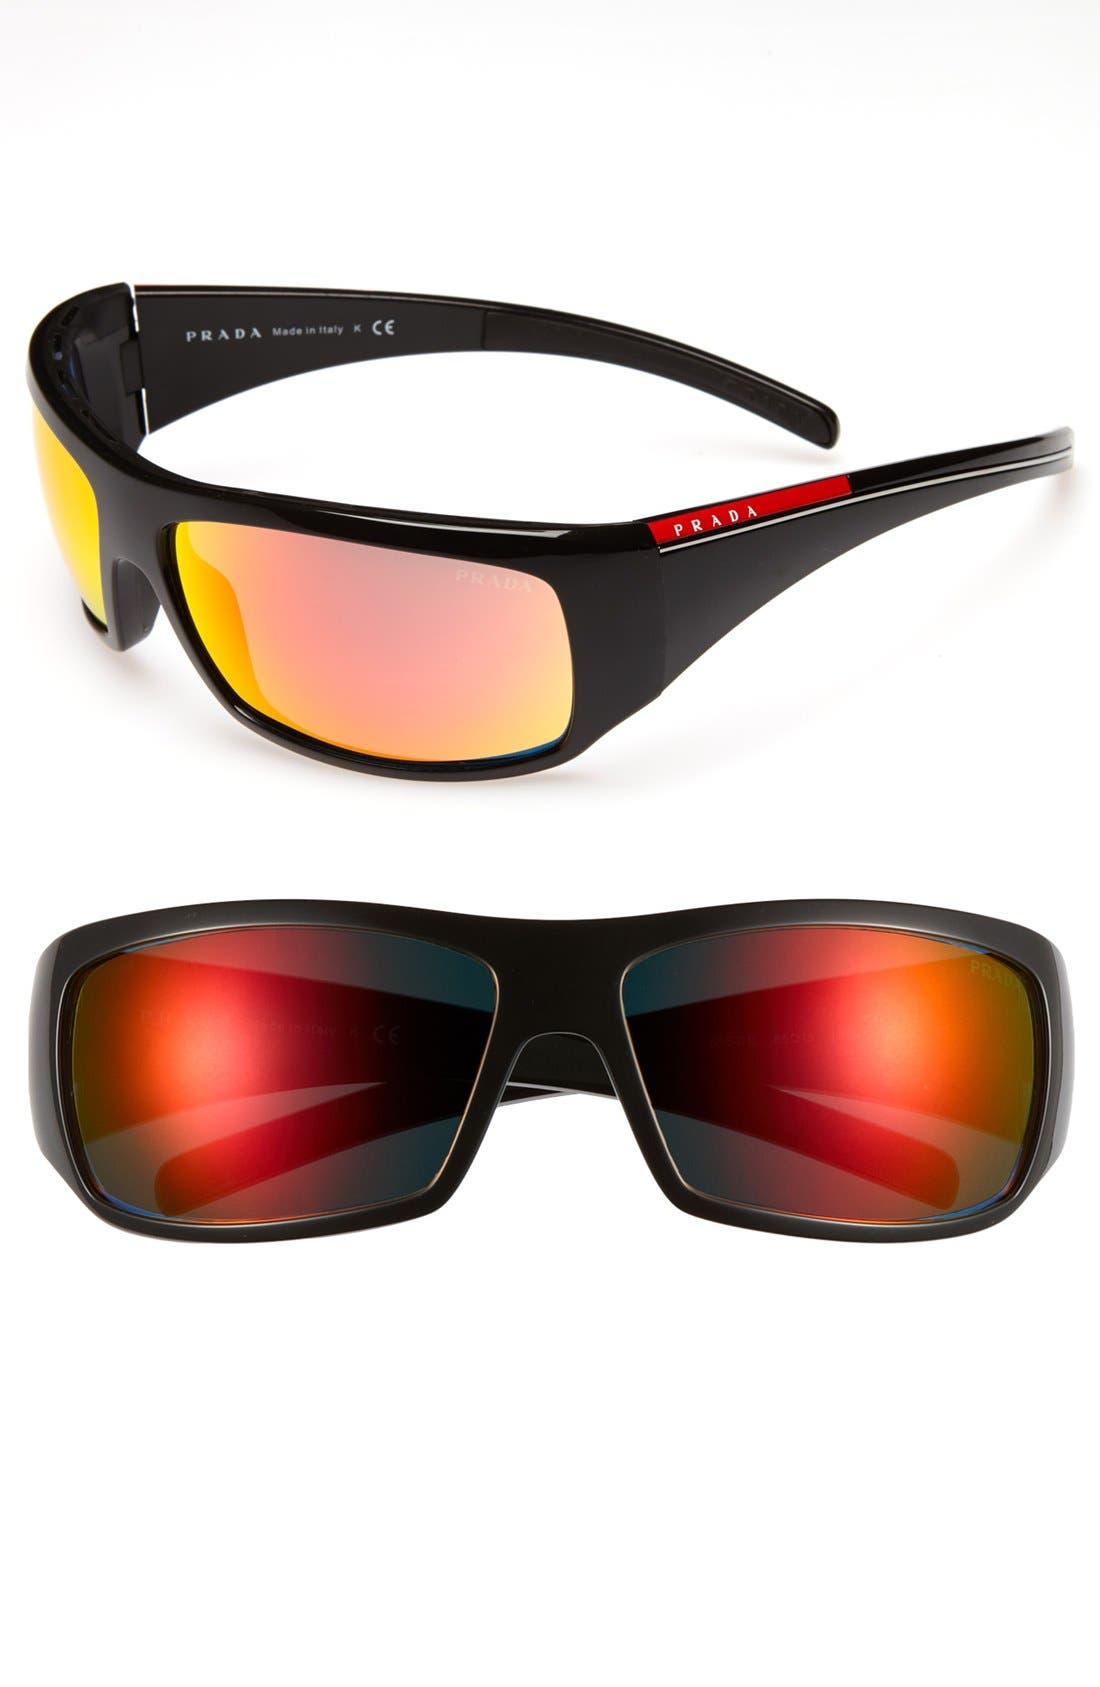 Alternate Image 1 Selected - Prada 65mm Wraparound Sunglasses